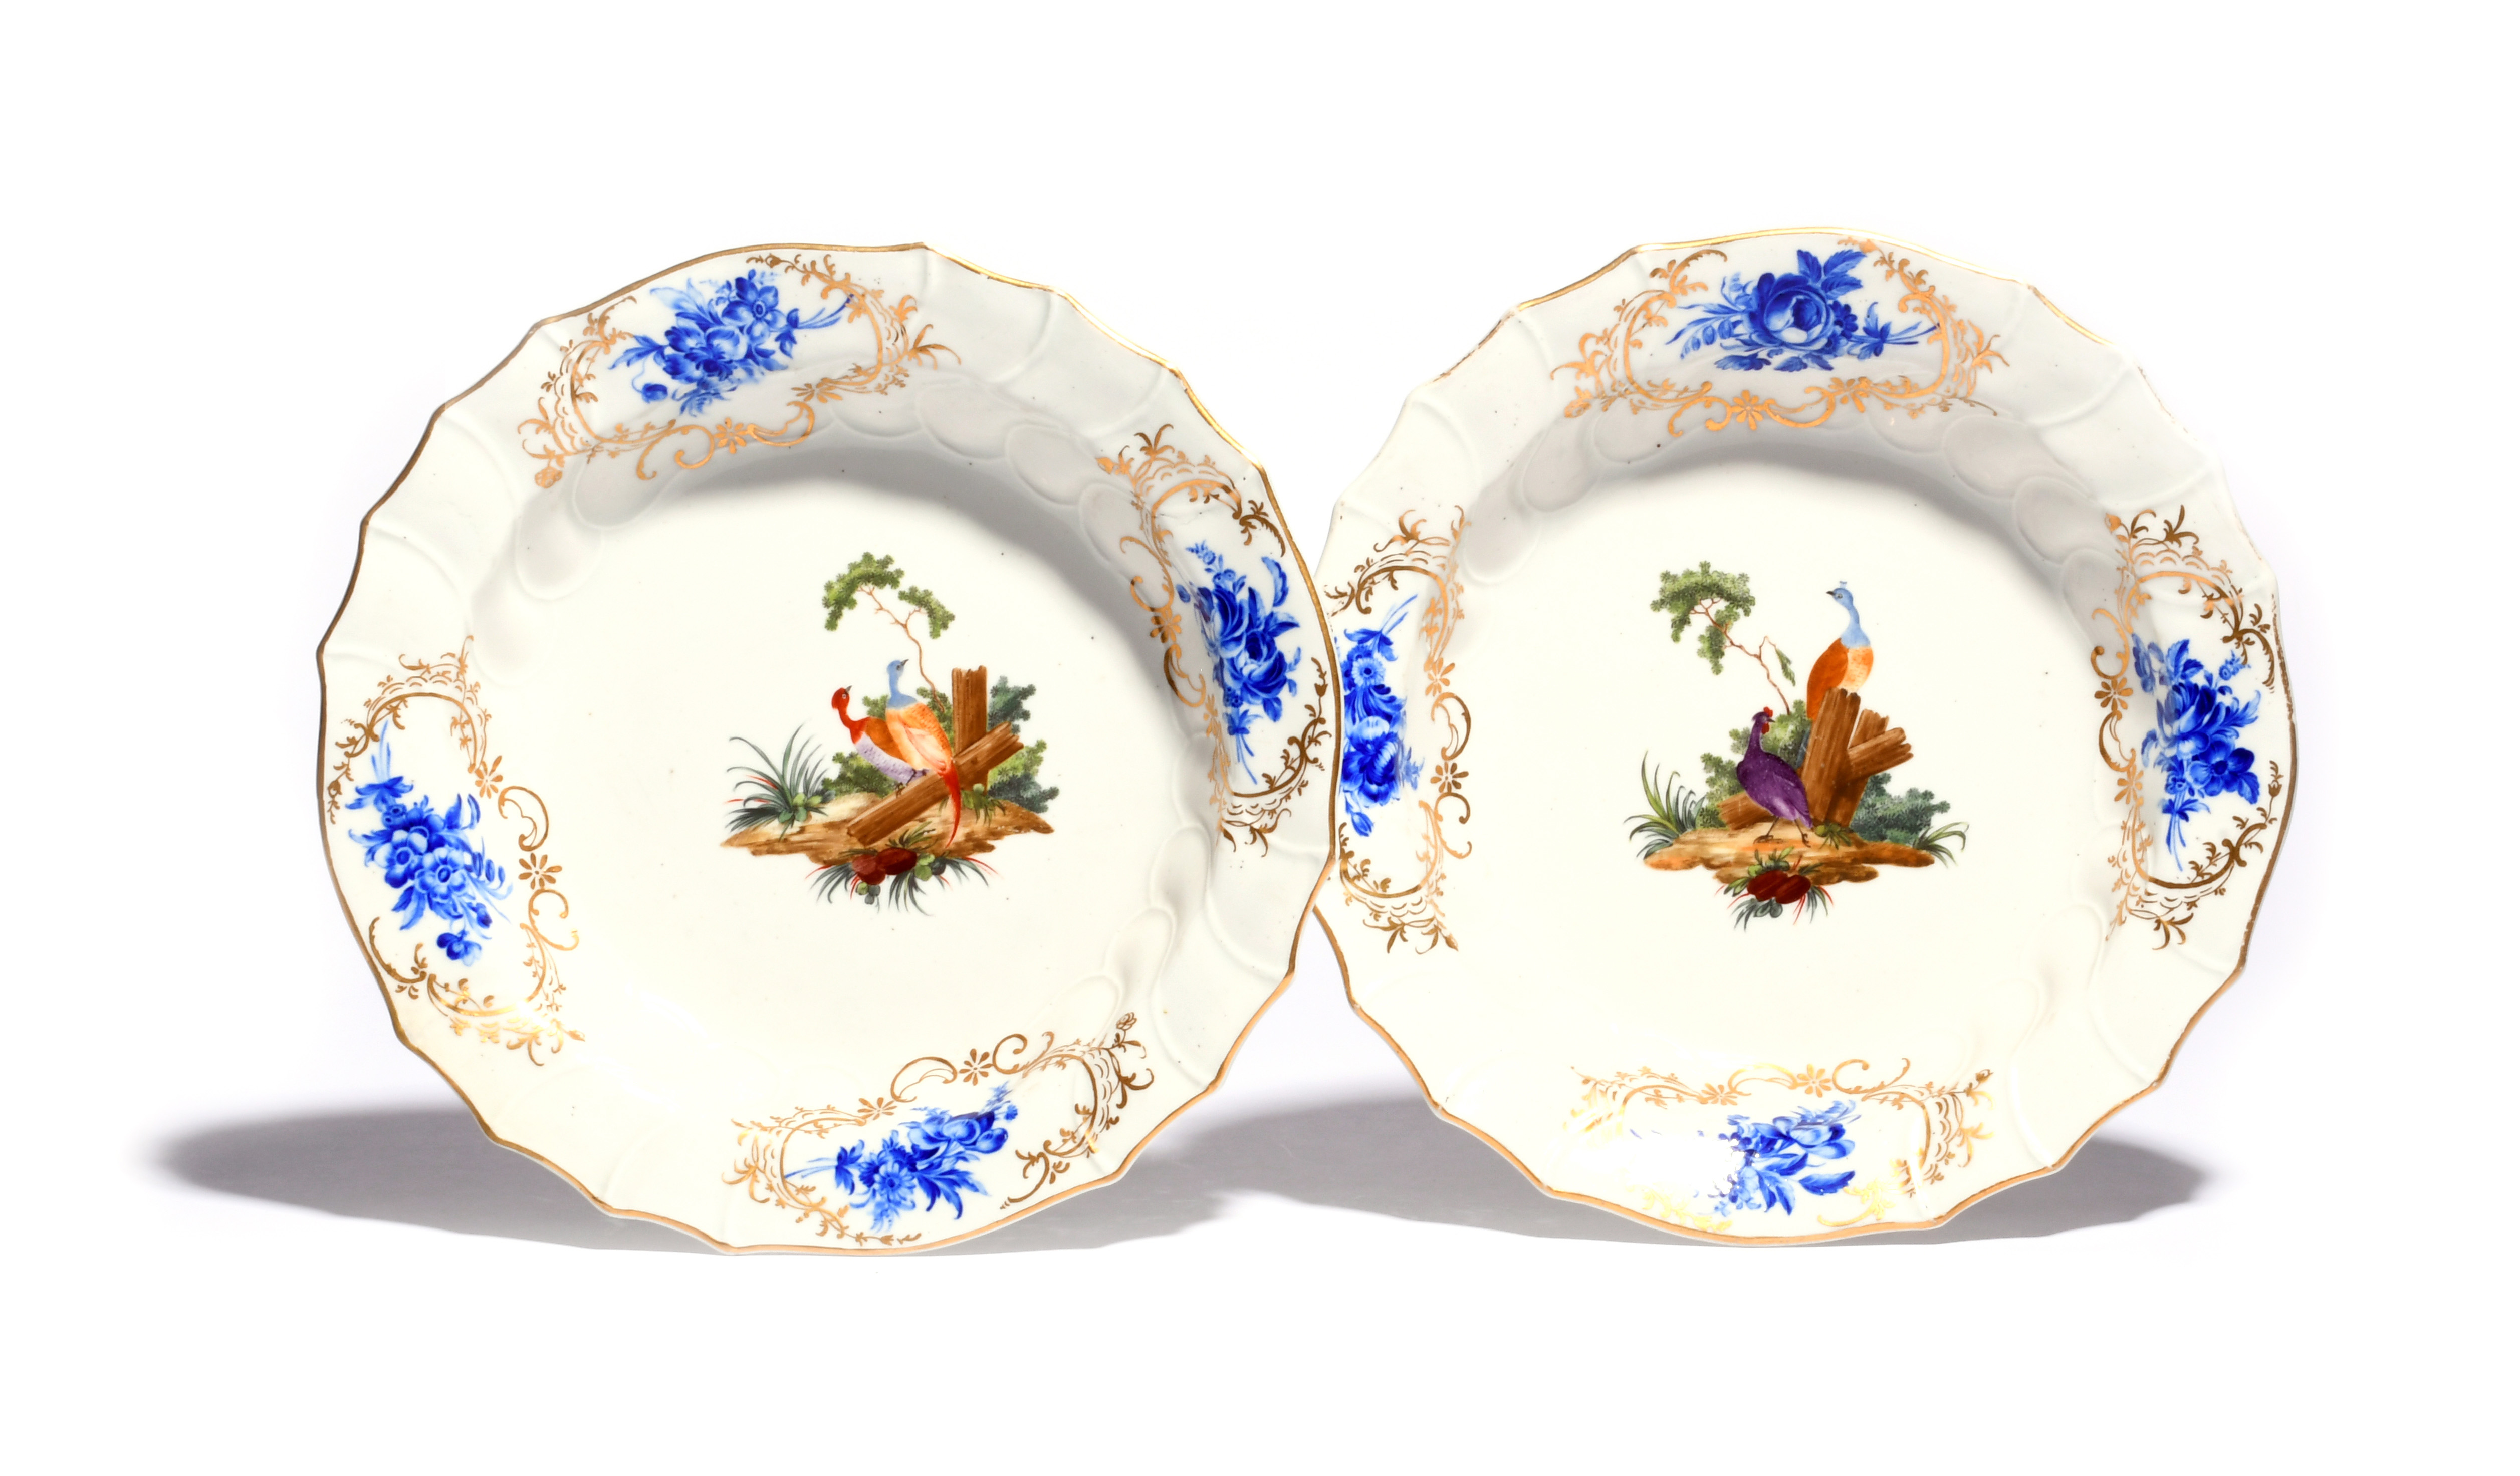 A pair of Tournai soup plates c.1770, decorated in the Hague with colourful vignettes of fancy birds